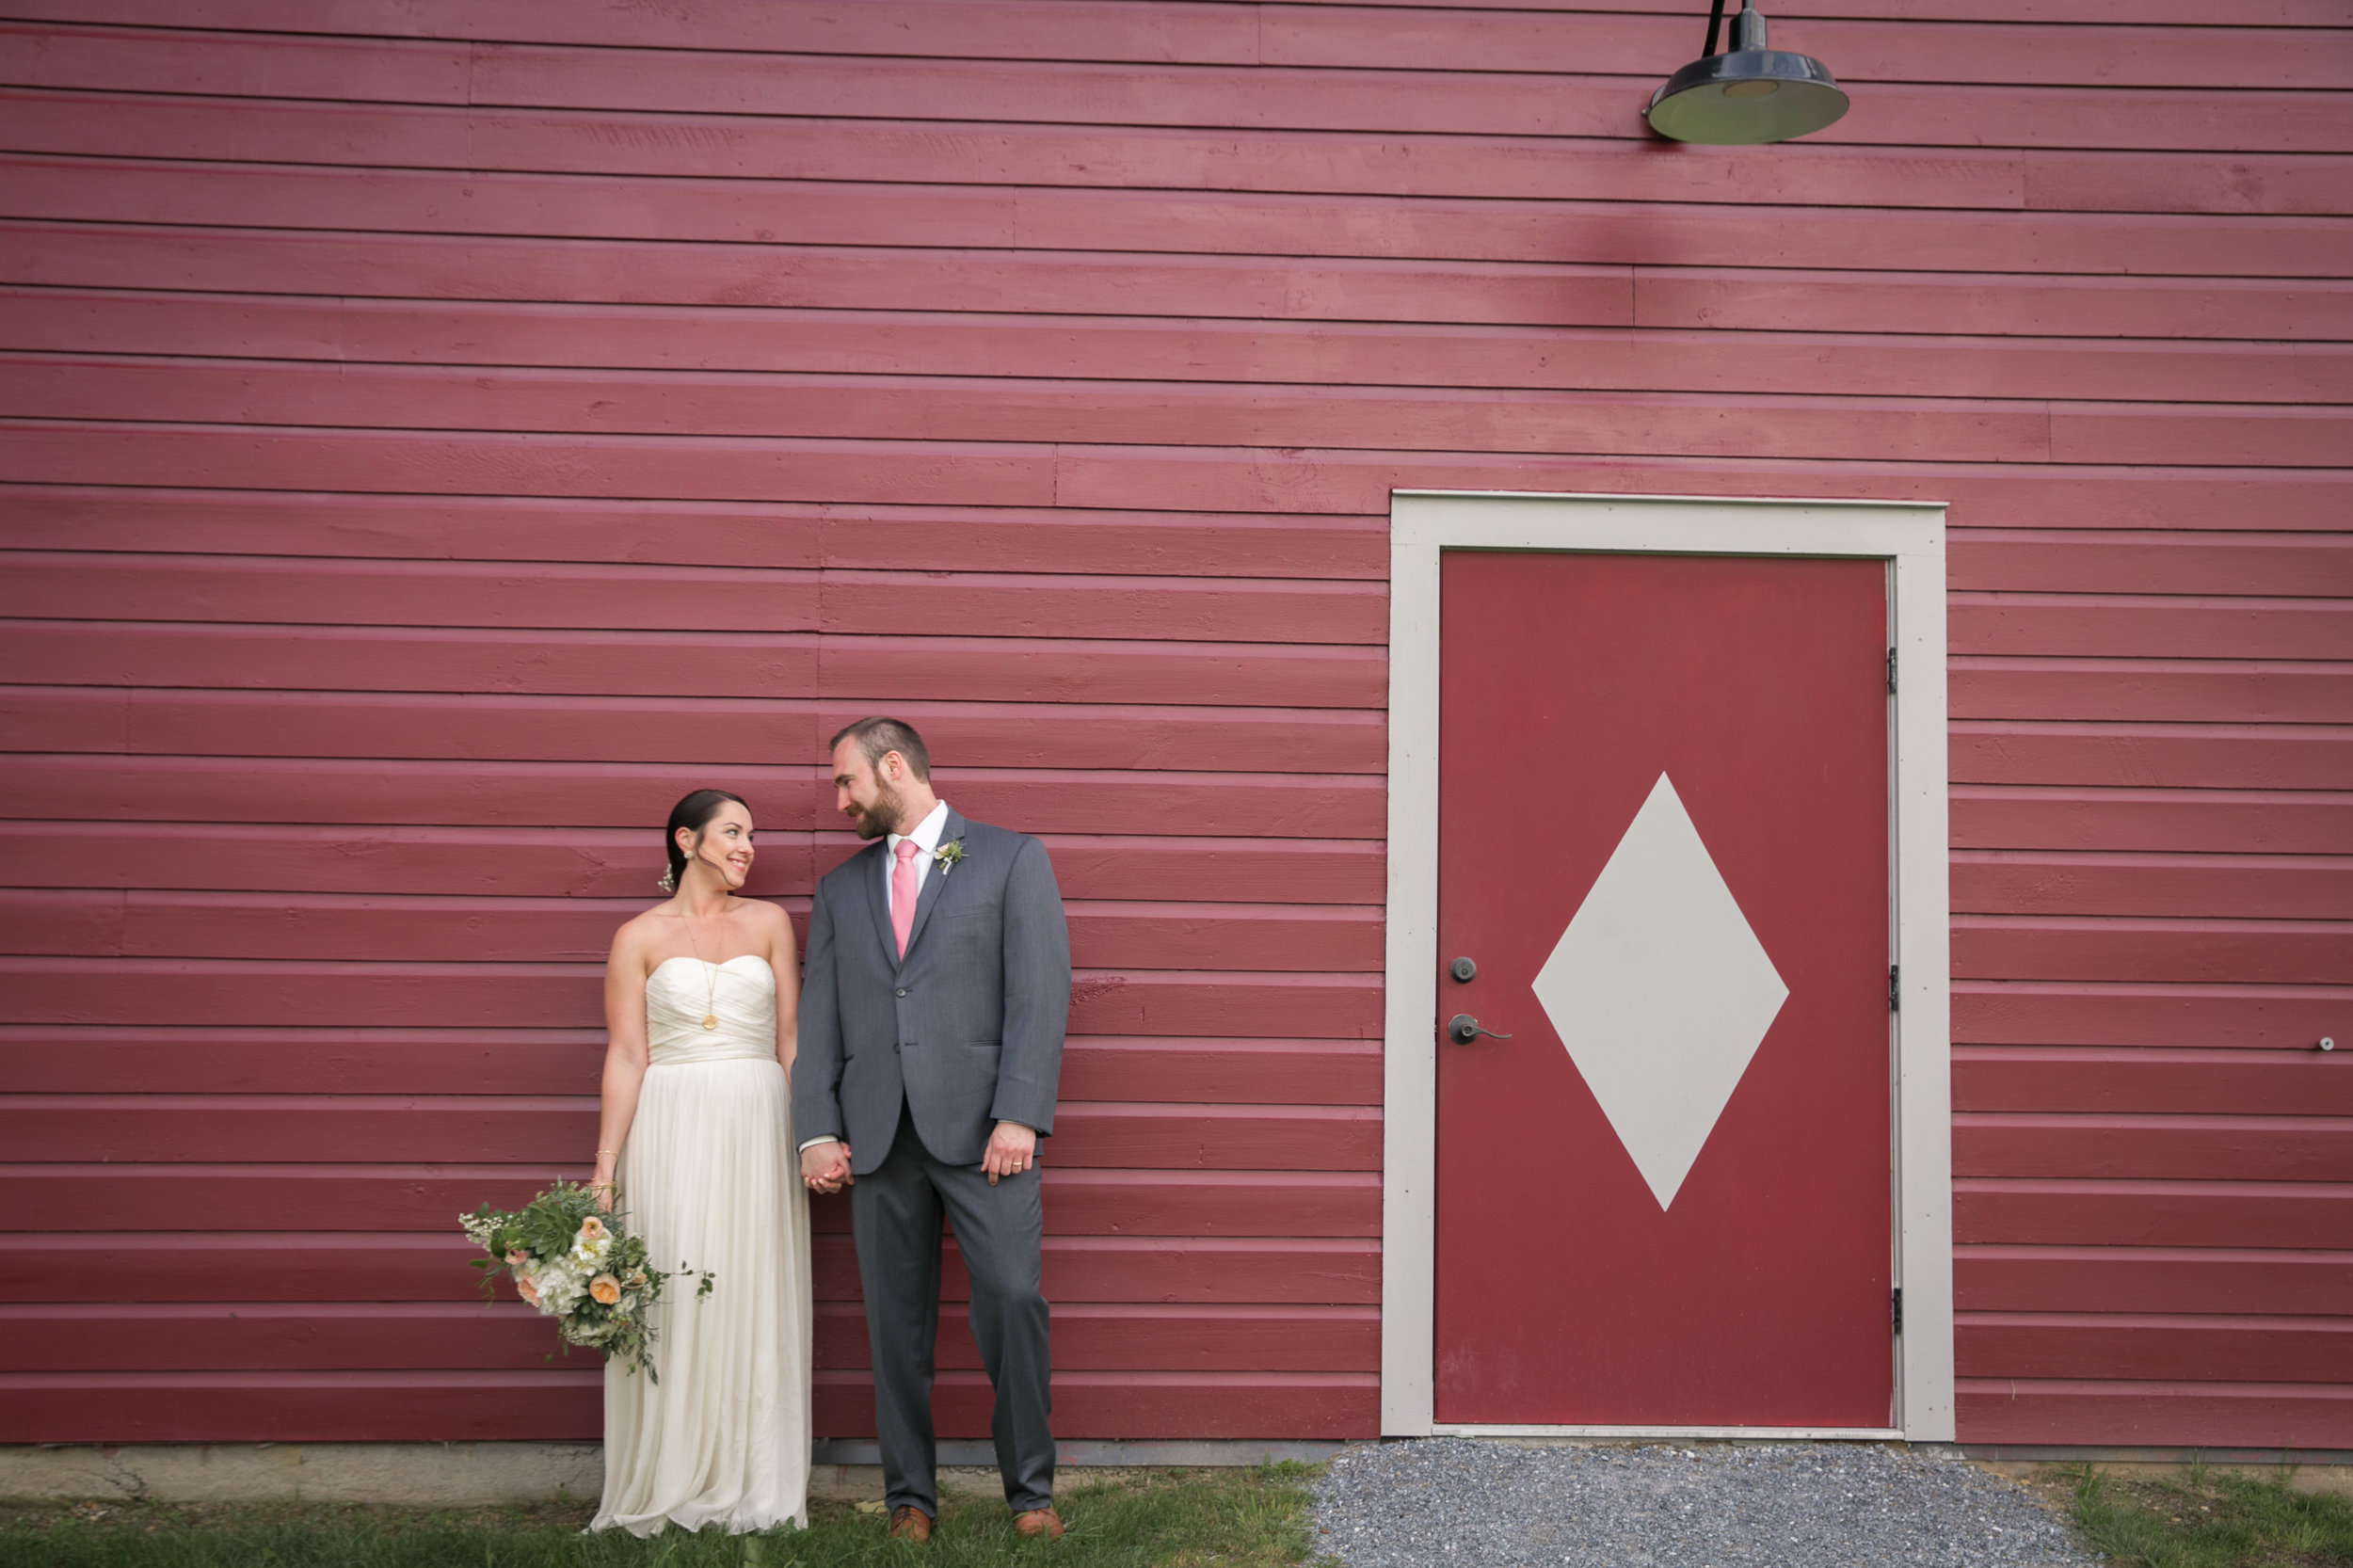 KELSEY & CHRIS - THE MANSFIELD BARN: JERICHO, VT